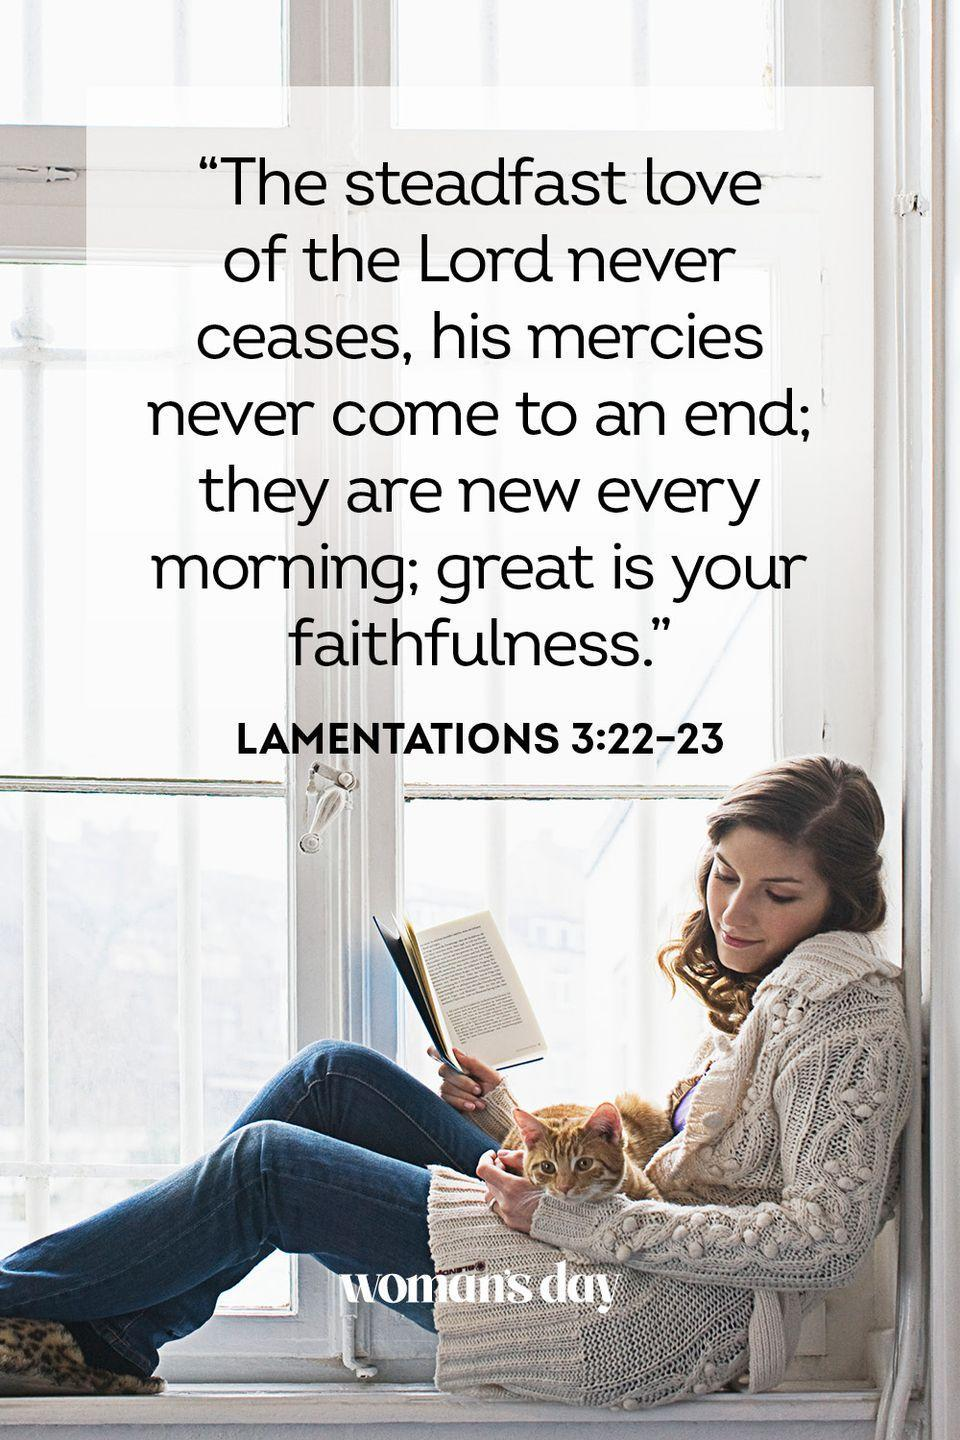 "<p>""The steadfast love of the Lord never ceases, his mercies never come to an end; they are new every morning; great is your faithfulness.""</p><p><strong>The Good News: </strong>God's comfort is renewed over and over again, fresh and new like the rising sun.</p>"